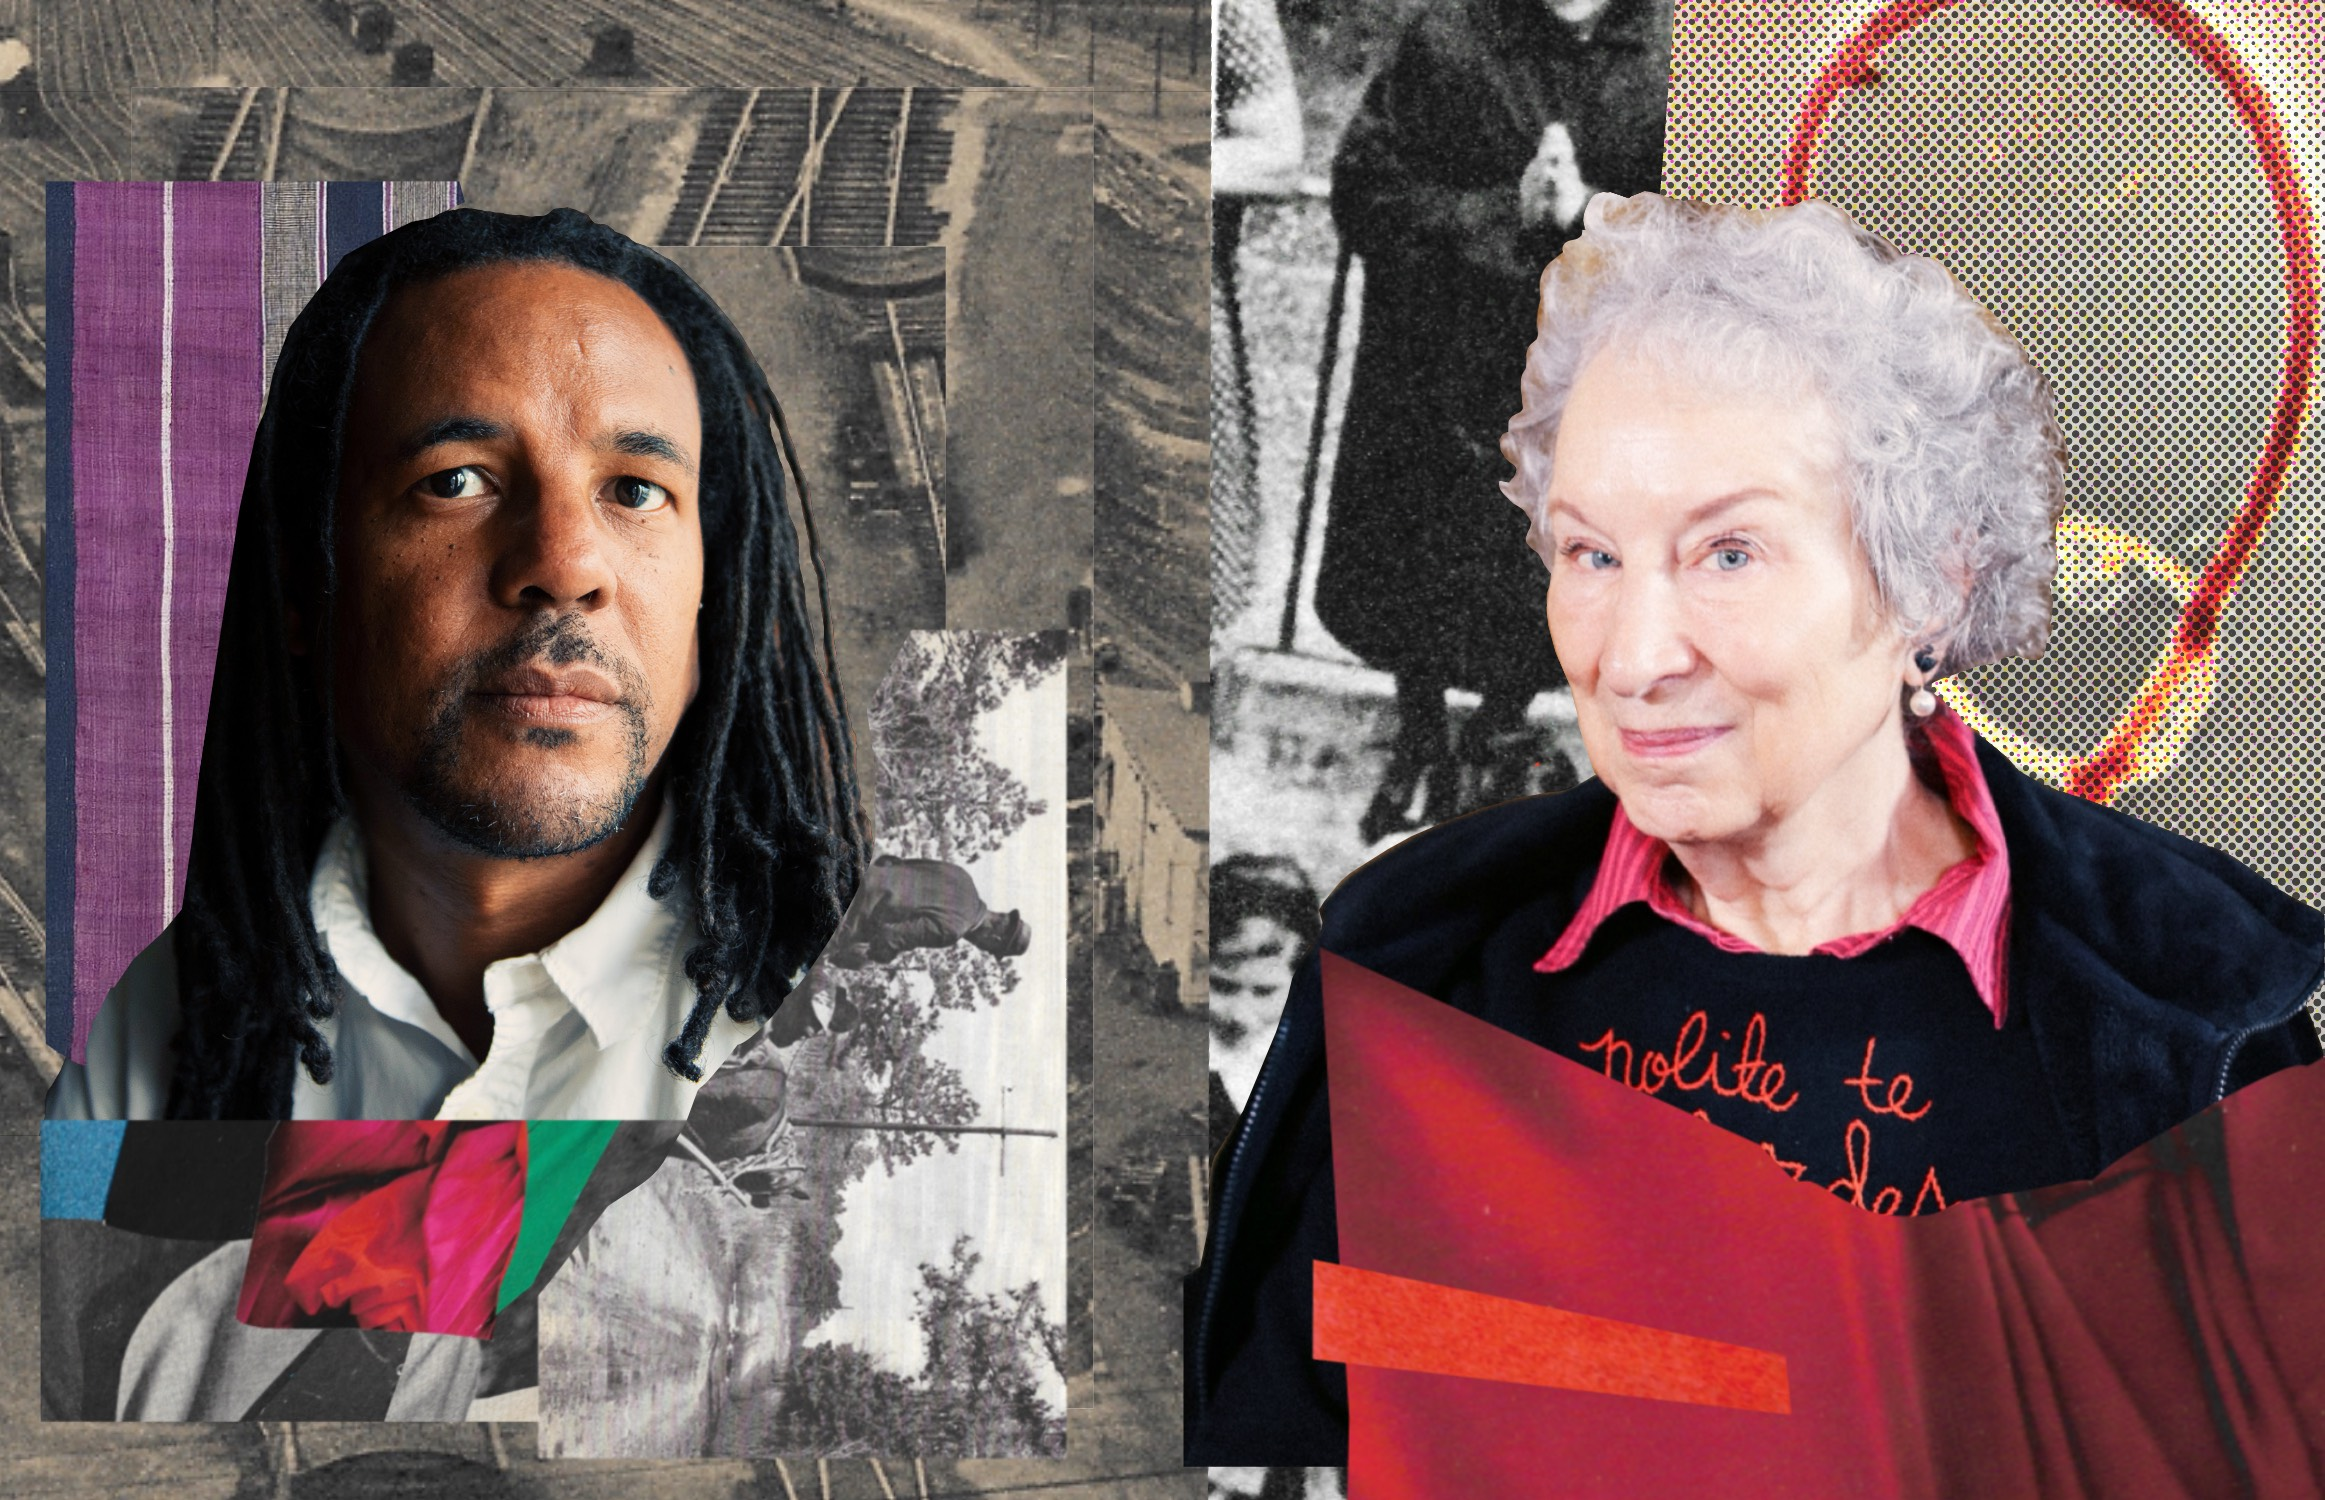 Colson Whitehead, author of The Underground Railroad, and Margaret Atwood, author of The Handmaid's Tale